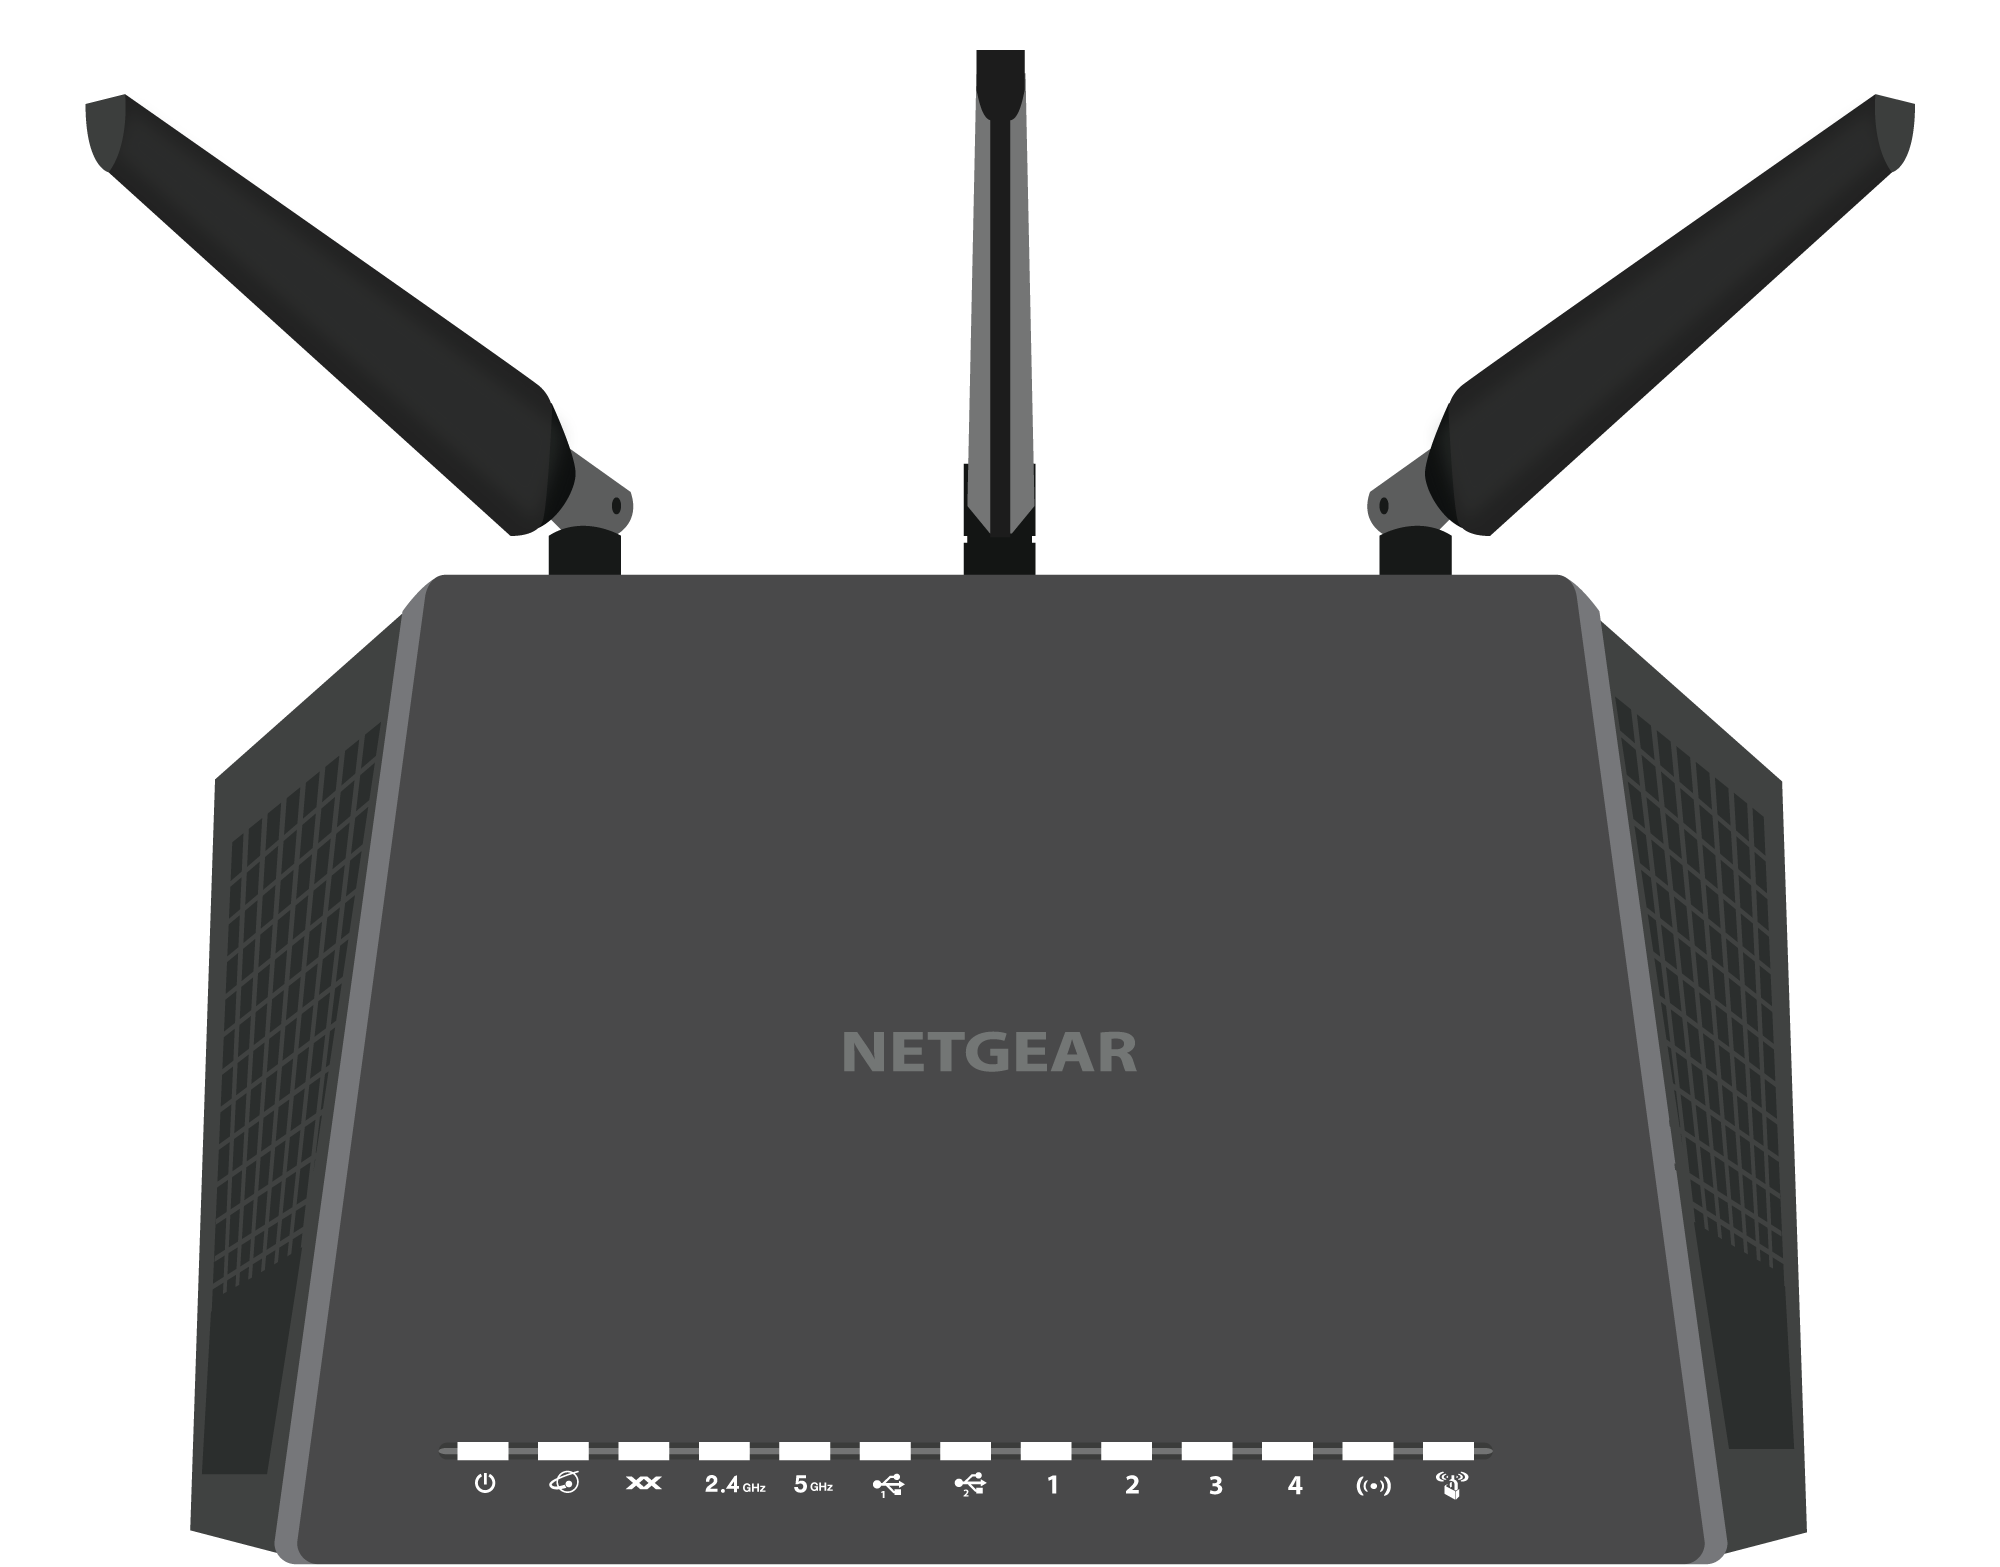 Netgear Modem Lights Meaning